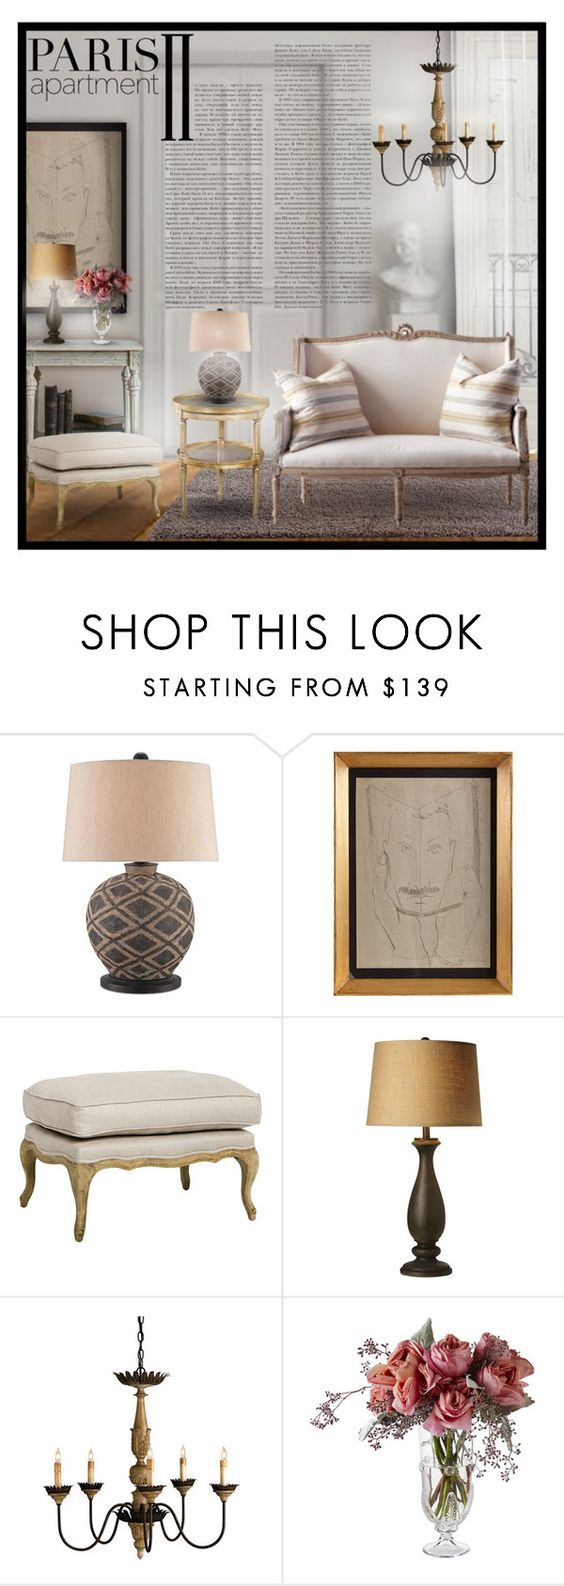 """""""Paris Apartment #4"""" by sally-simpson ❤ liked on Polyvore featuring interior, interiors, interior design, home, home decor, interior decorating, Theodore Alexander, Fornasetti, Juliska and parisapartment"""